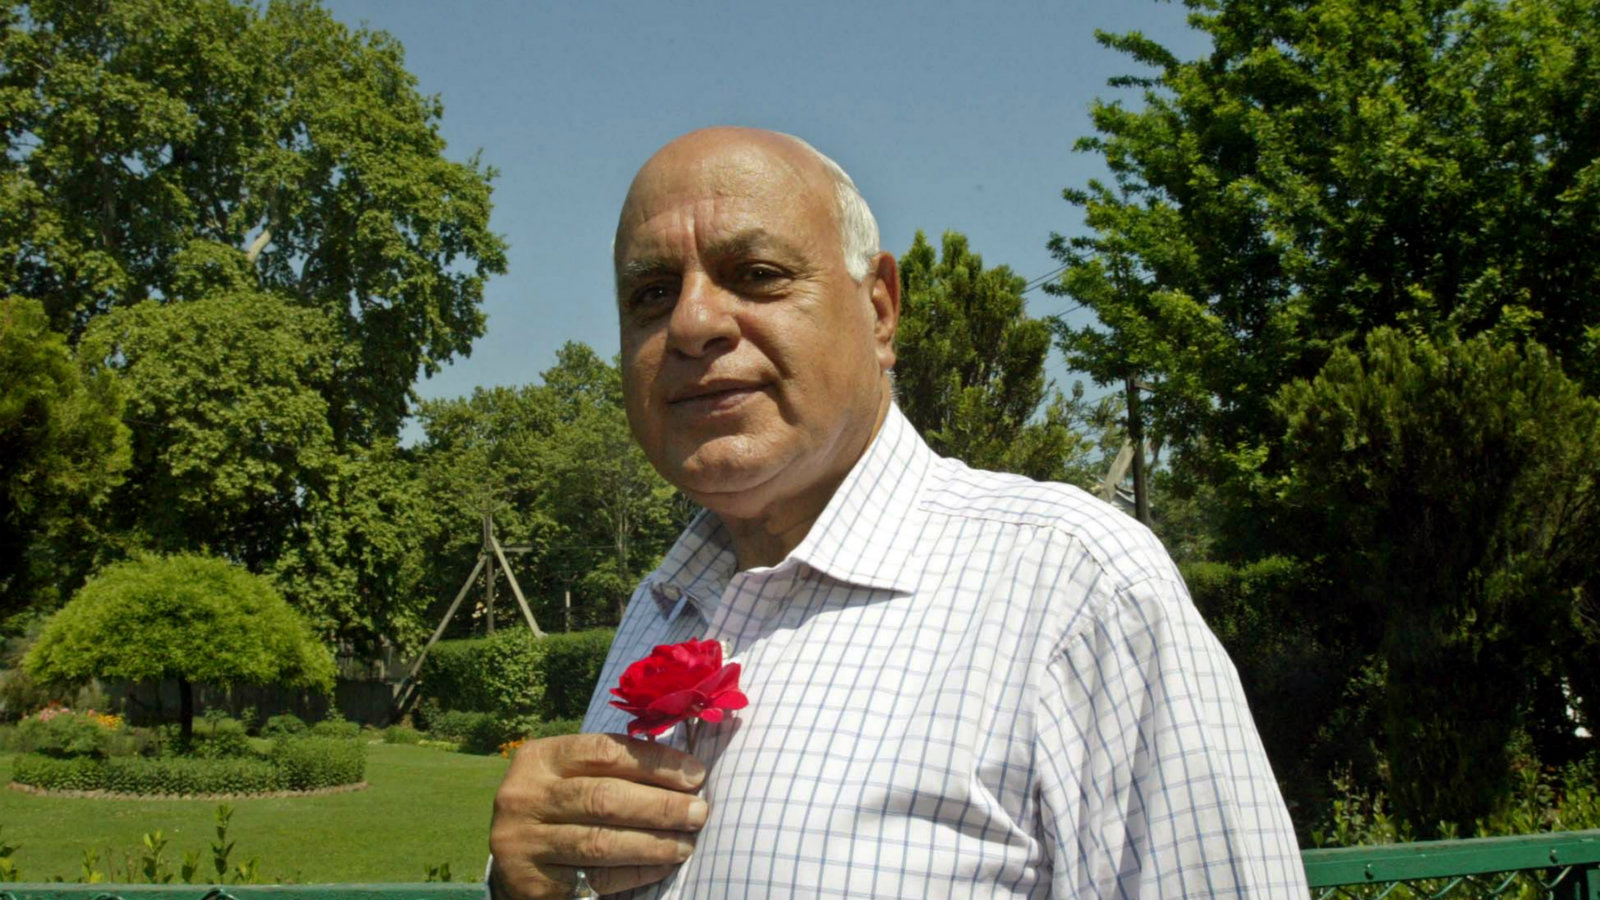 Farooq Abdullah once defended India amid global backlash on Kashmir. Now, he has to defend himself